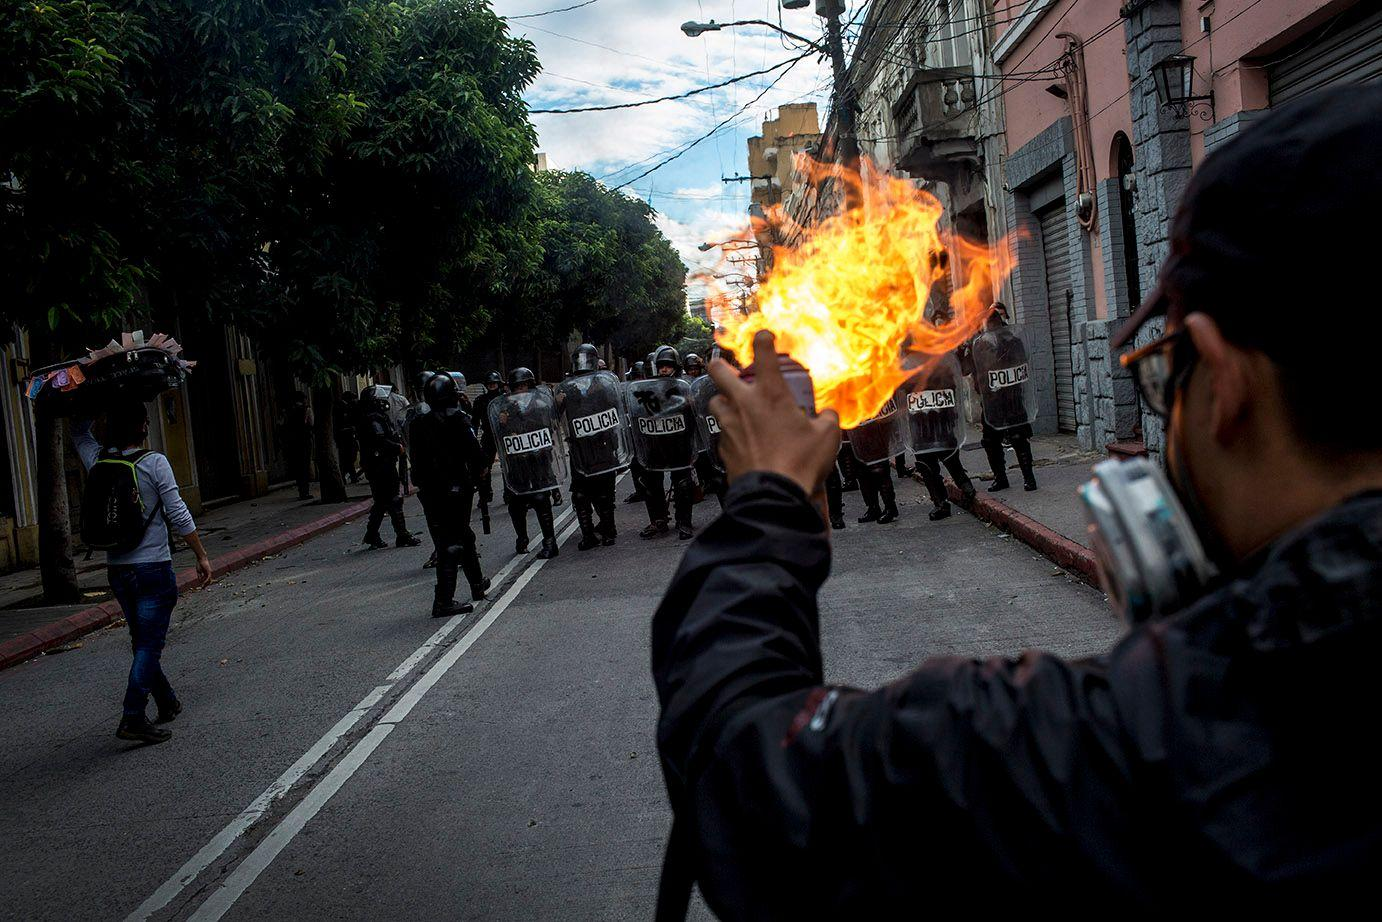 A protester burns gas in front of a riot squad. /